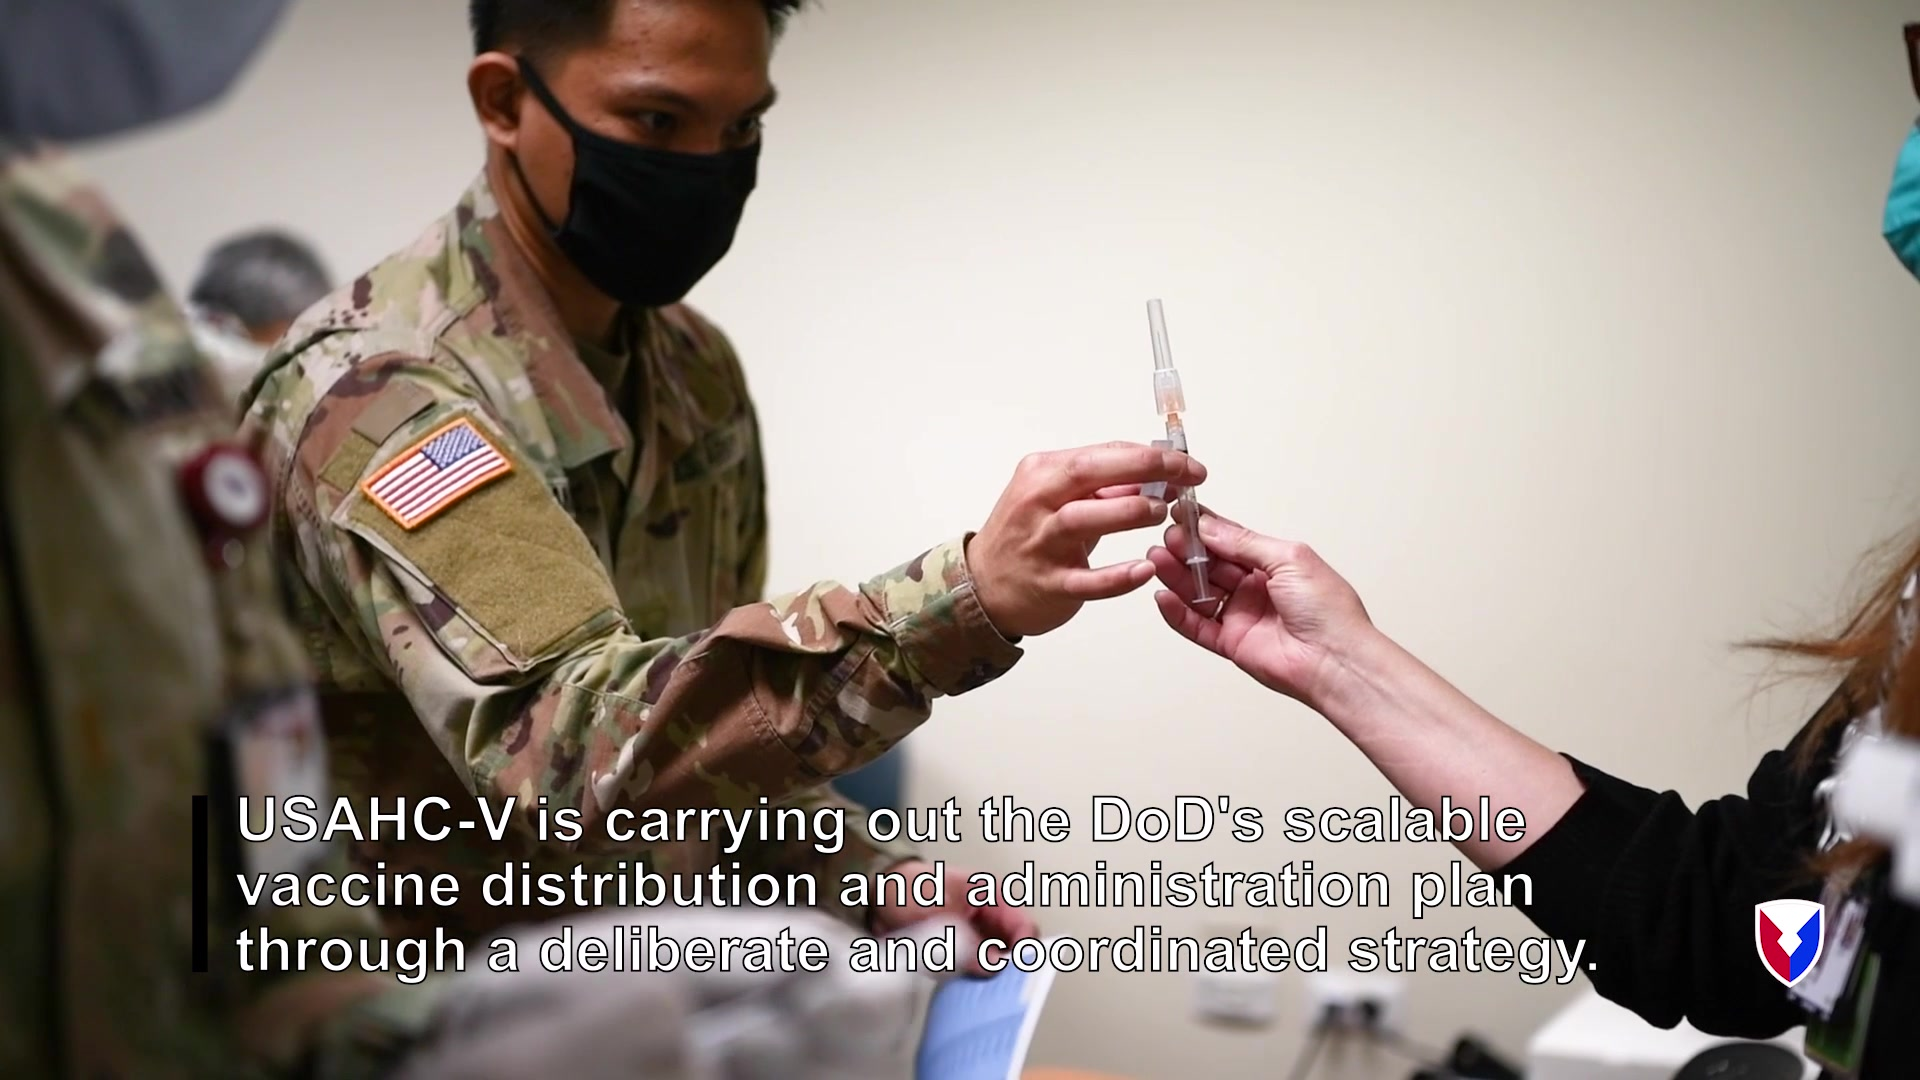 U.S. Army Health Center Vicenza administers COVID-19 vaccine